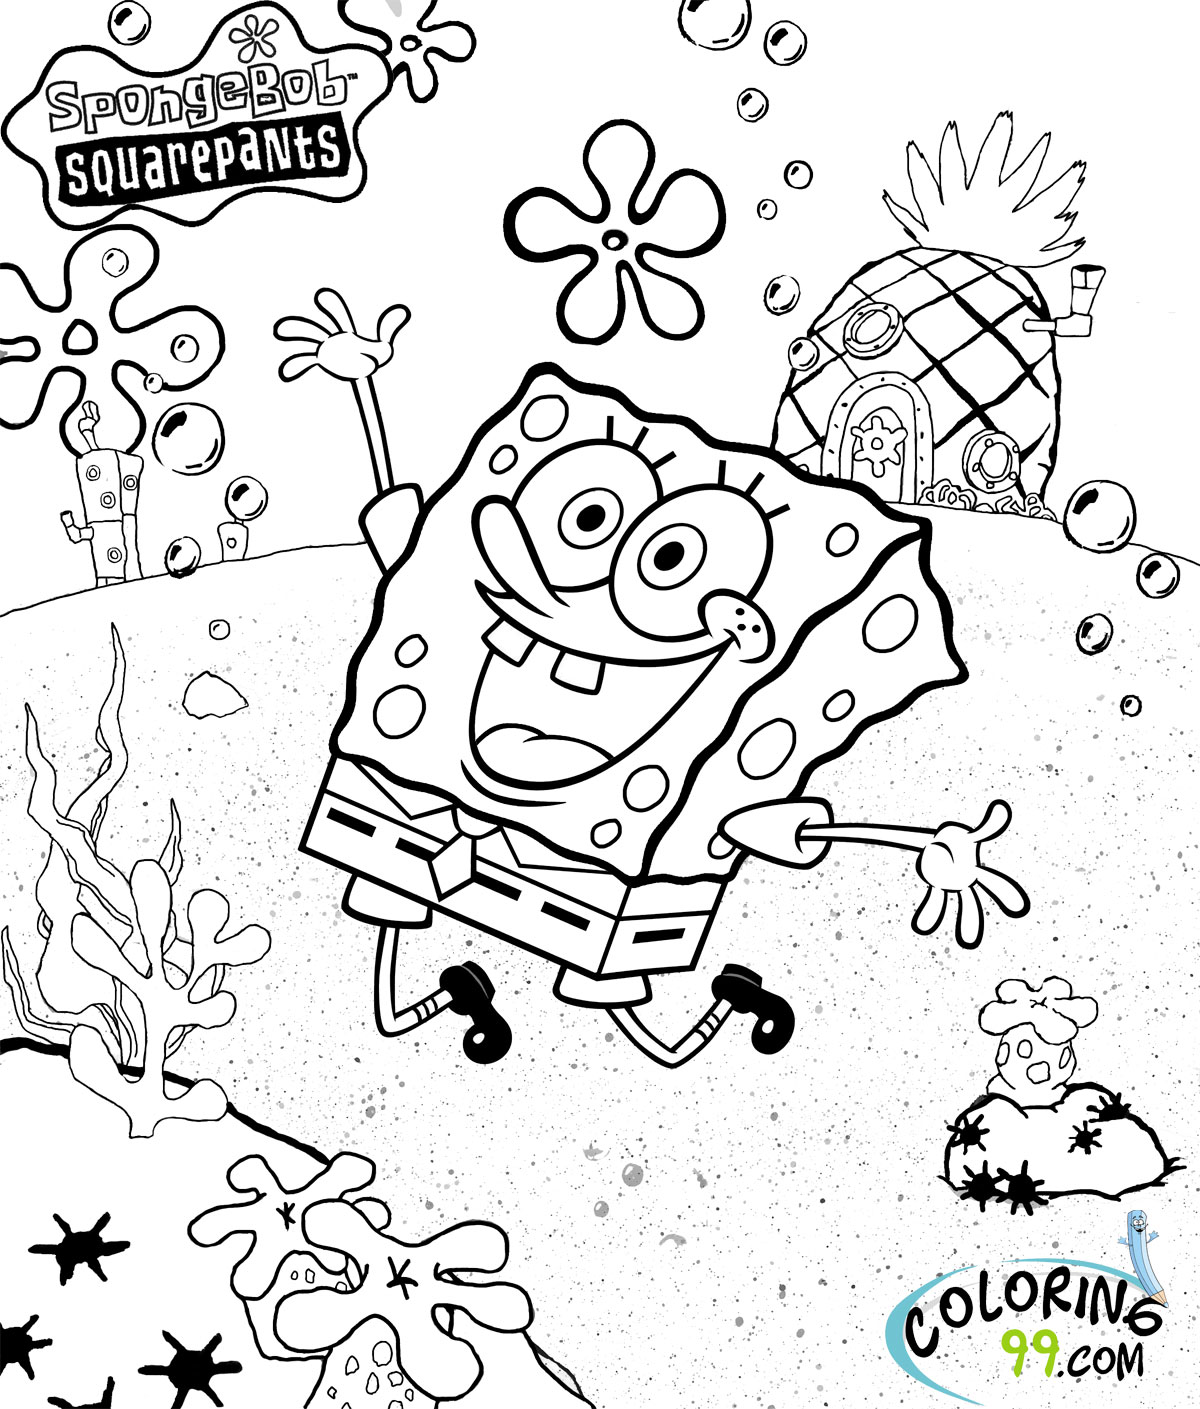 Spongebob Squarepants Coloring Pages Minister Coloring Spongebob Coloring Pages